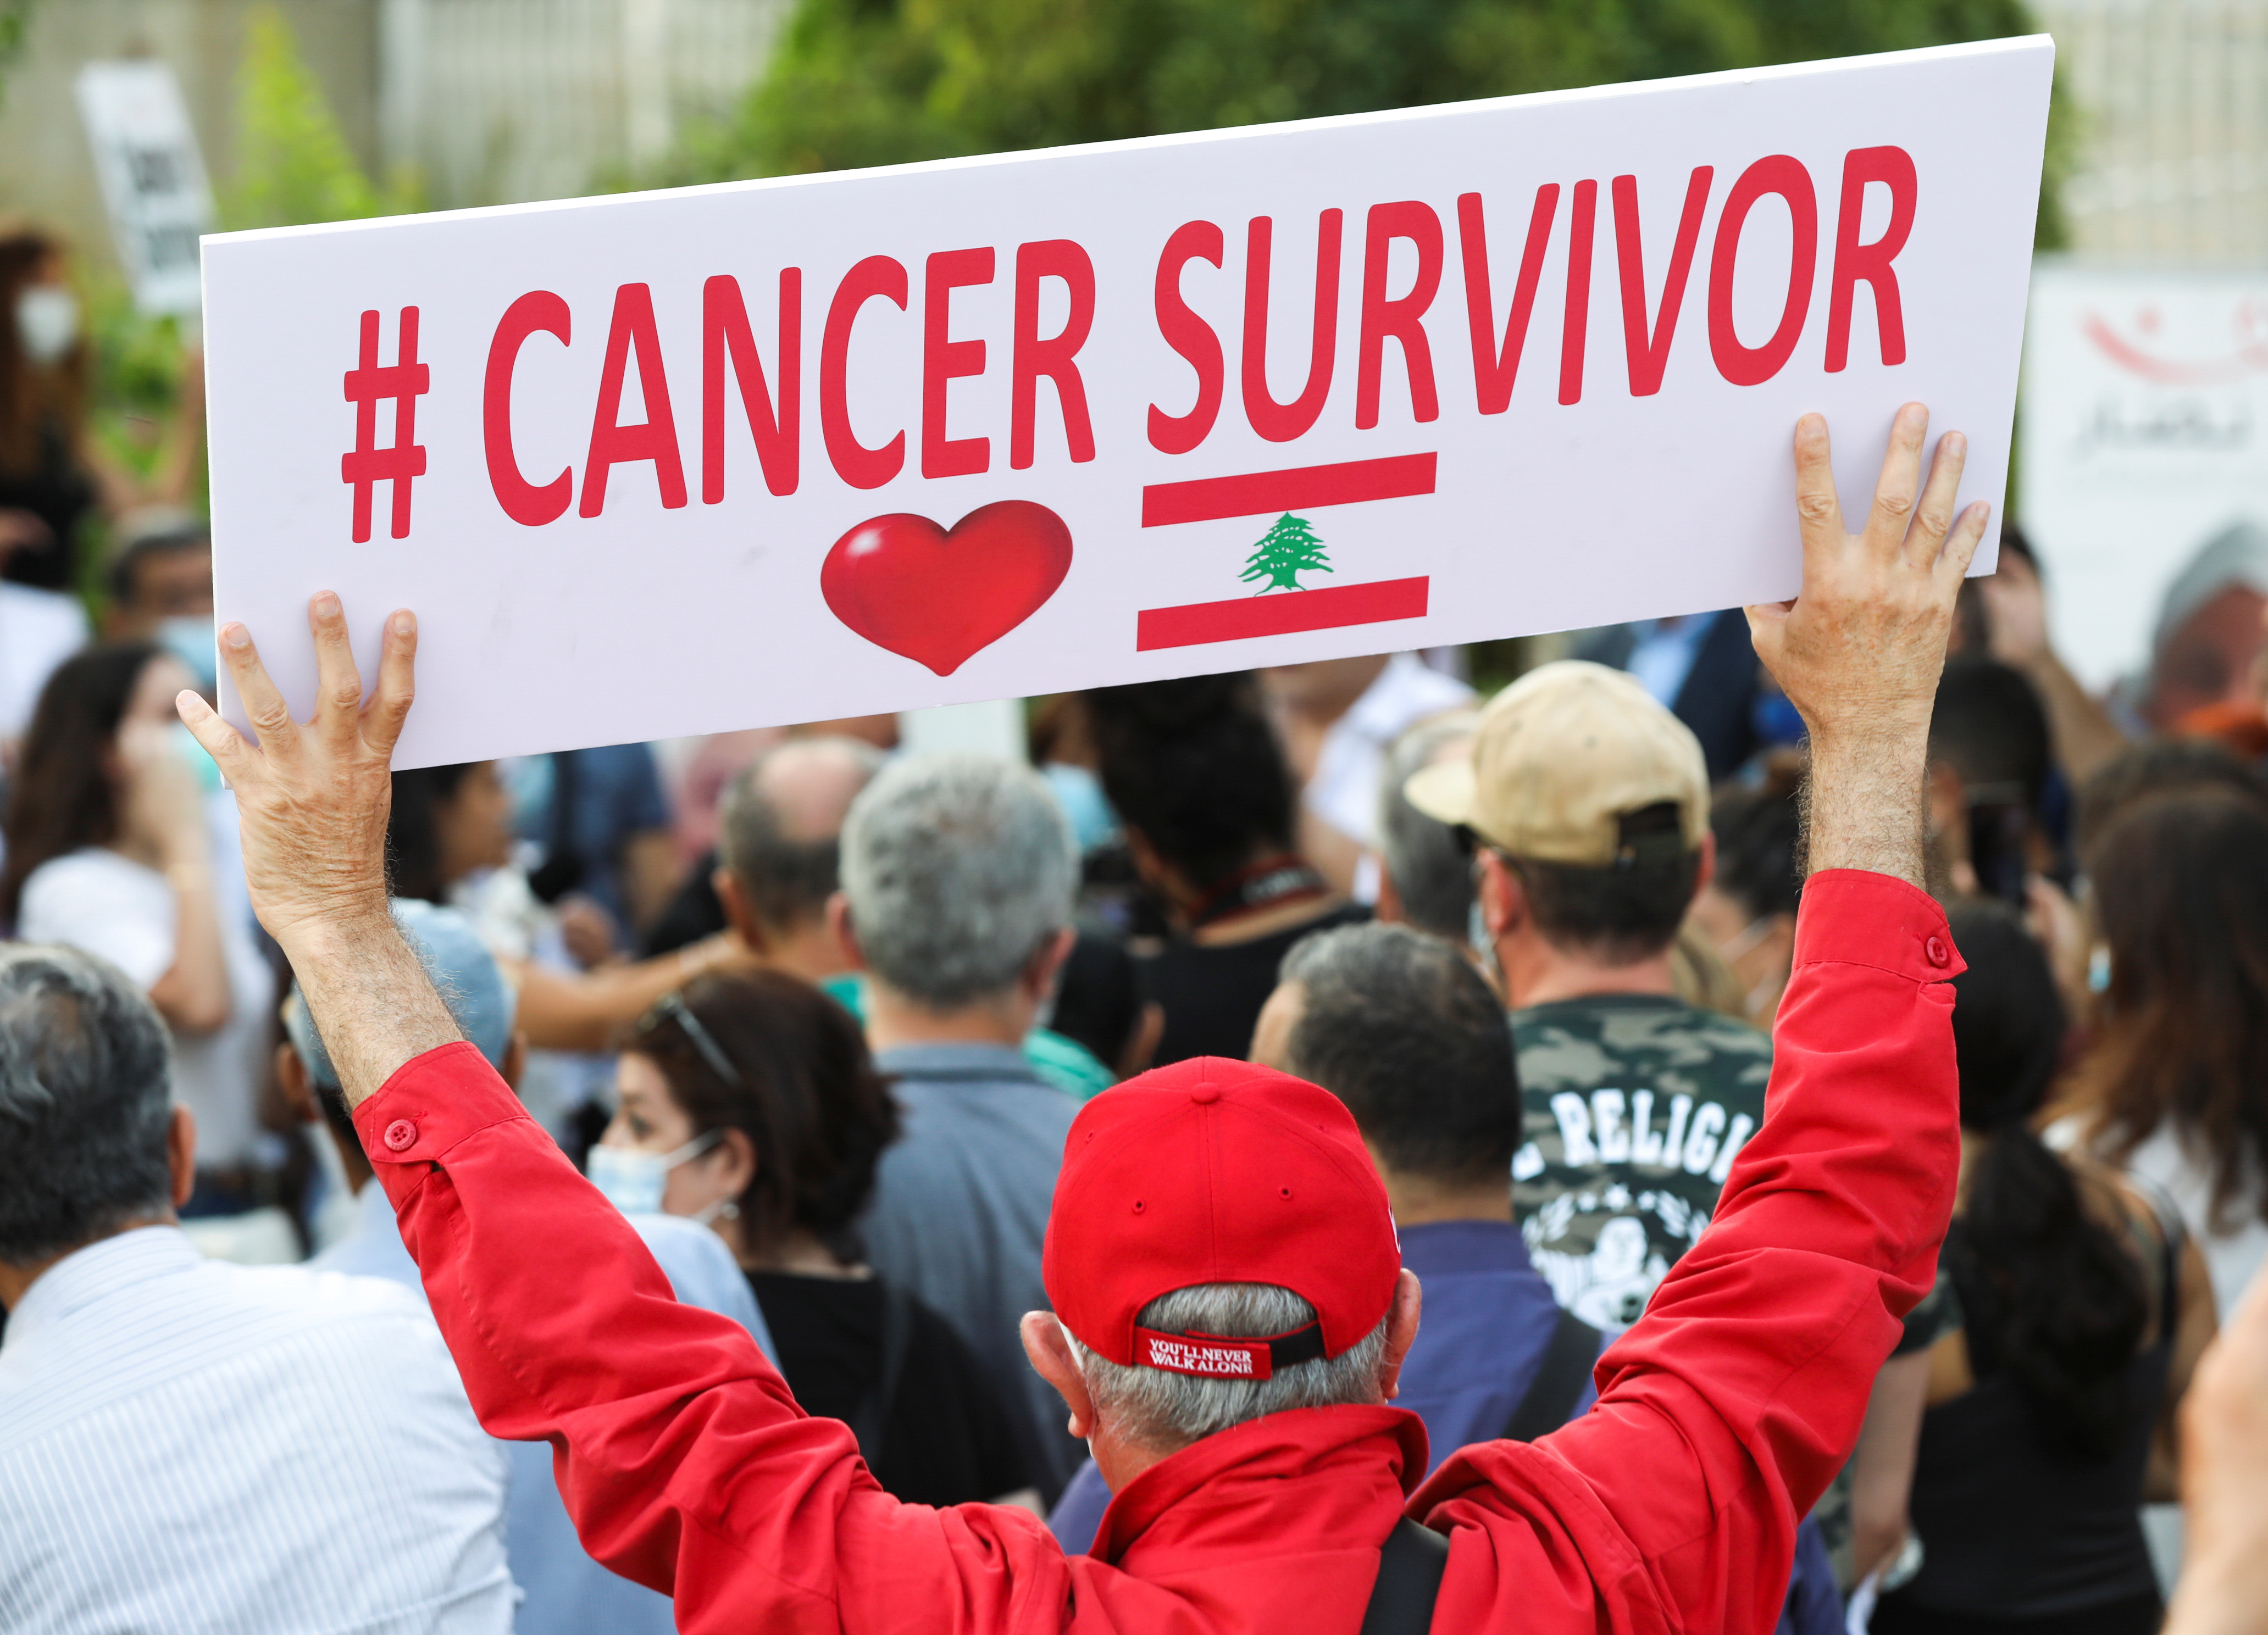 A man holds a sign during a sit-in demonstration as shortages of cancer medications spread, in front of the U.N. headquarters in Beirut, Lebanon August 26, 2021. Picture taken August 26, 2021. REUTERS/Mohamed Azakir